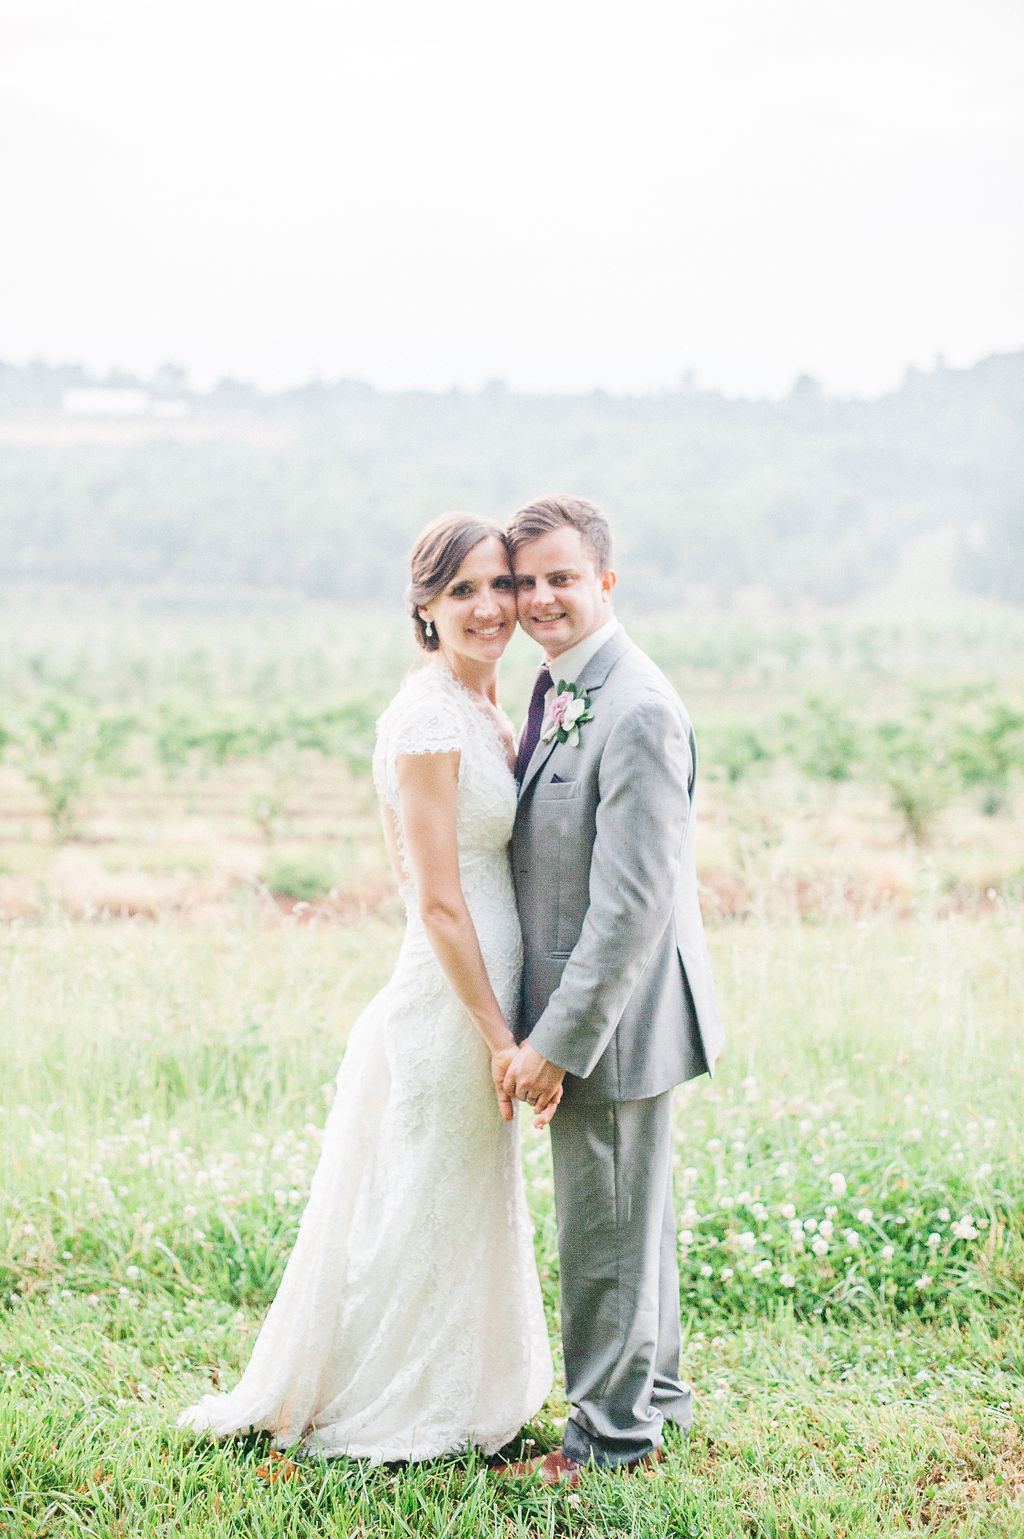 MarketatGrelenWeddingPhotographerSarahHouston-1361.jpg